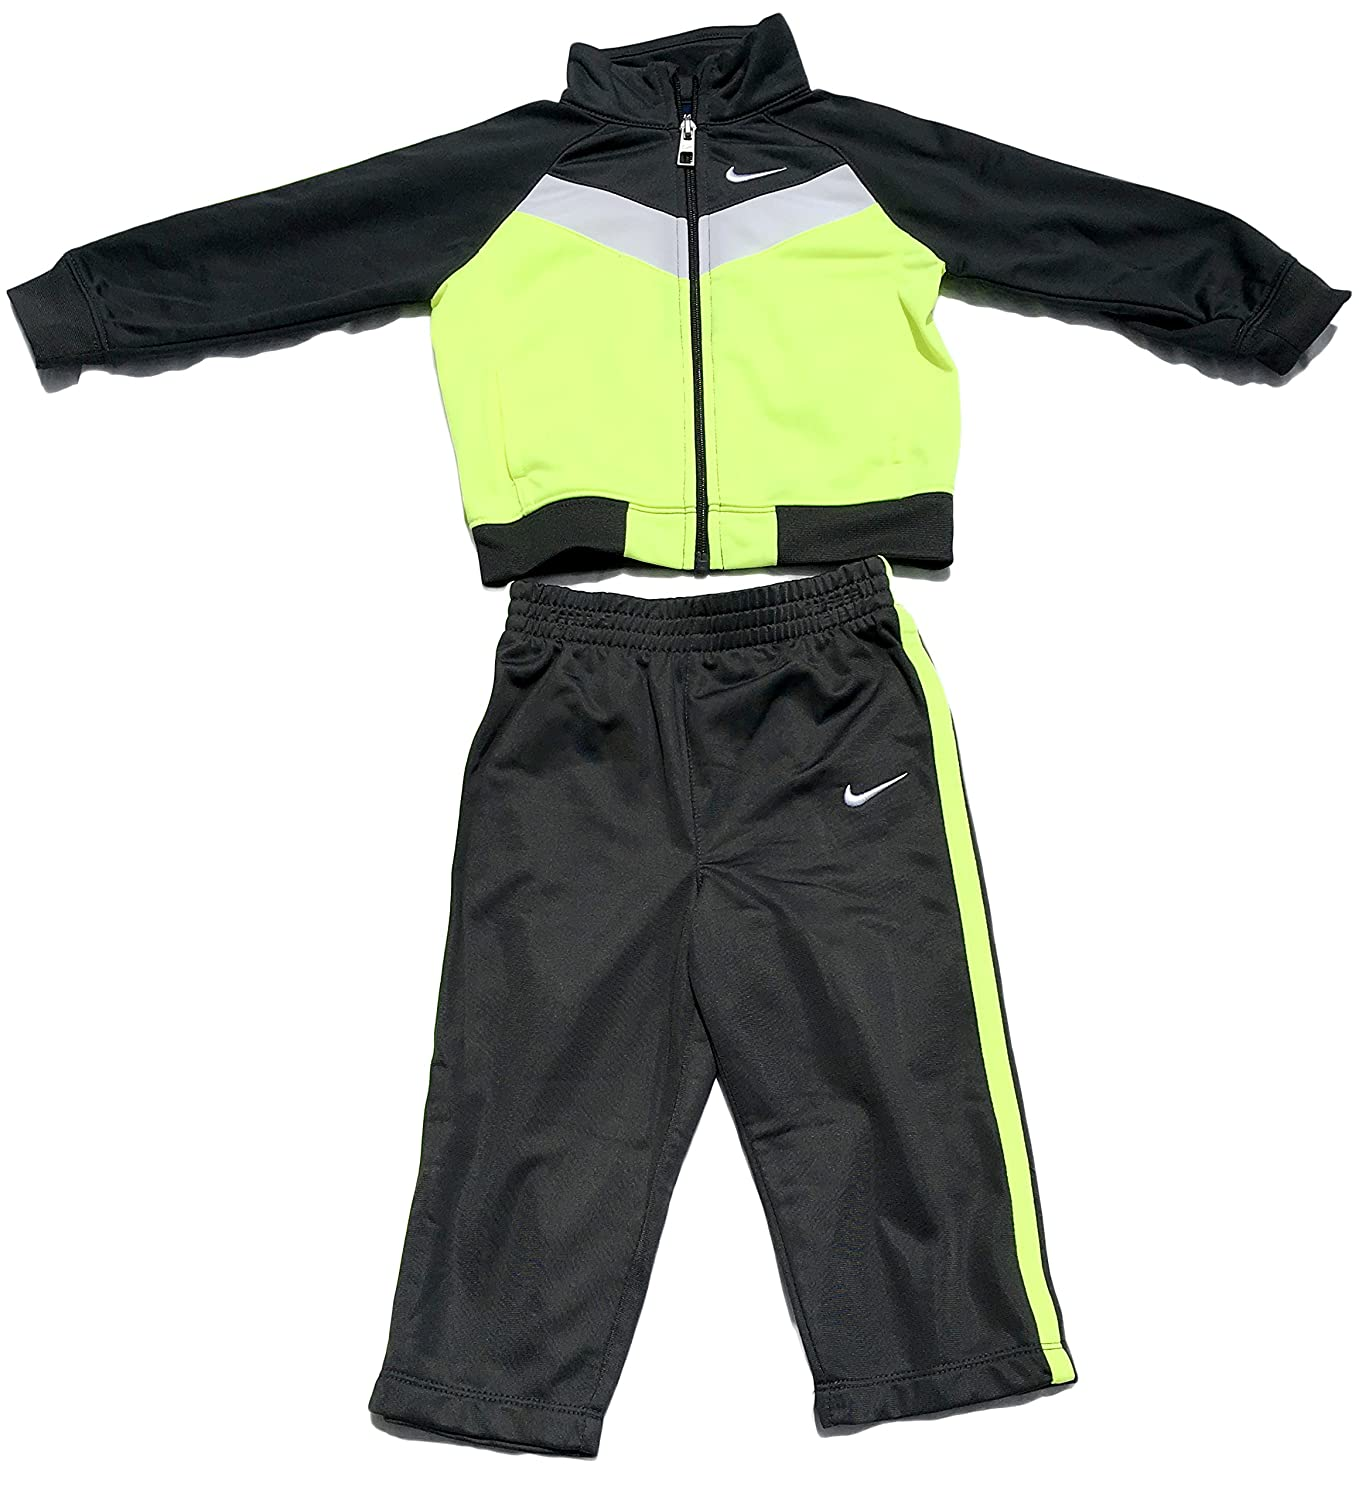 6f10d459035 Amazon.com  Toddler Boy Nike Tricot Jacket   Pants Set (2T)  Clothing